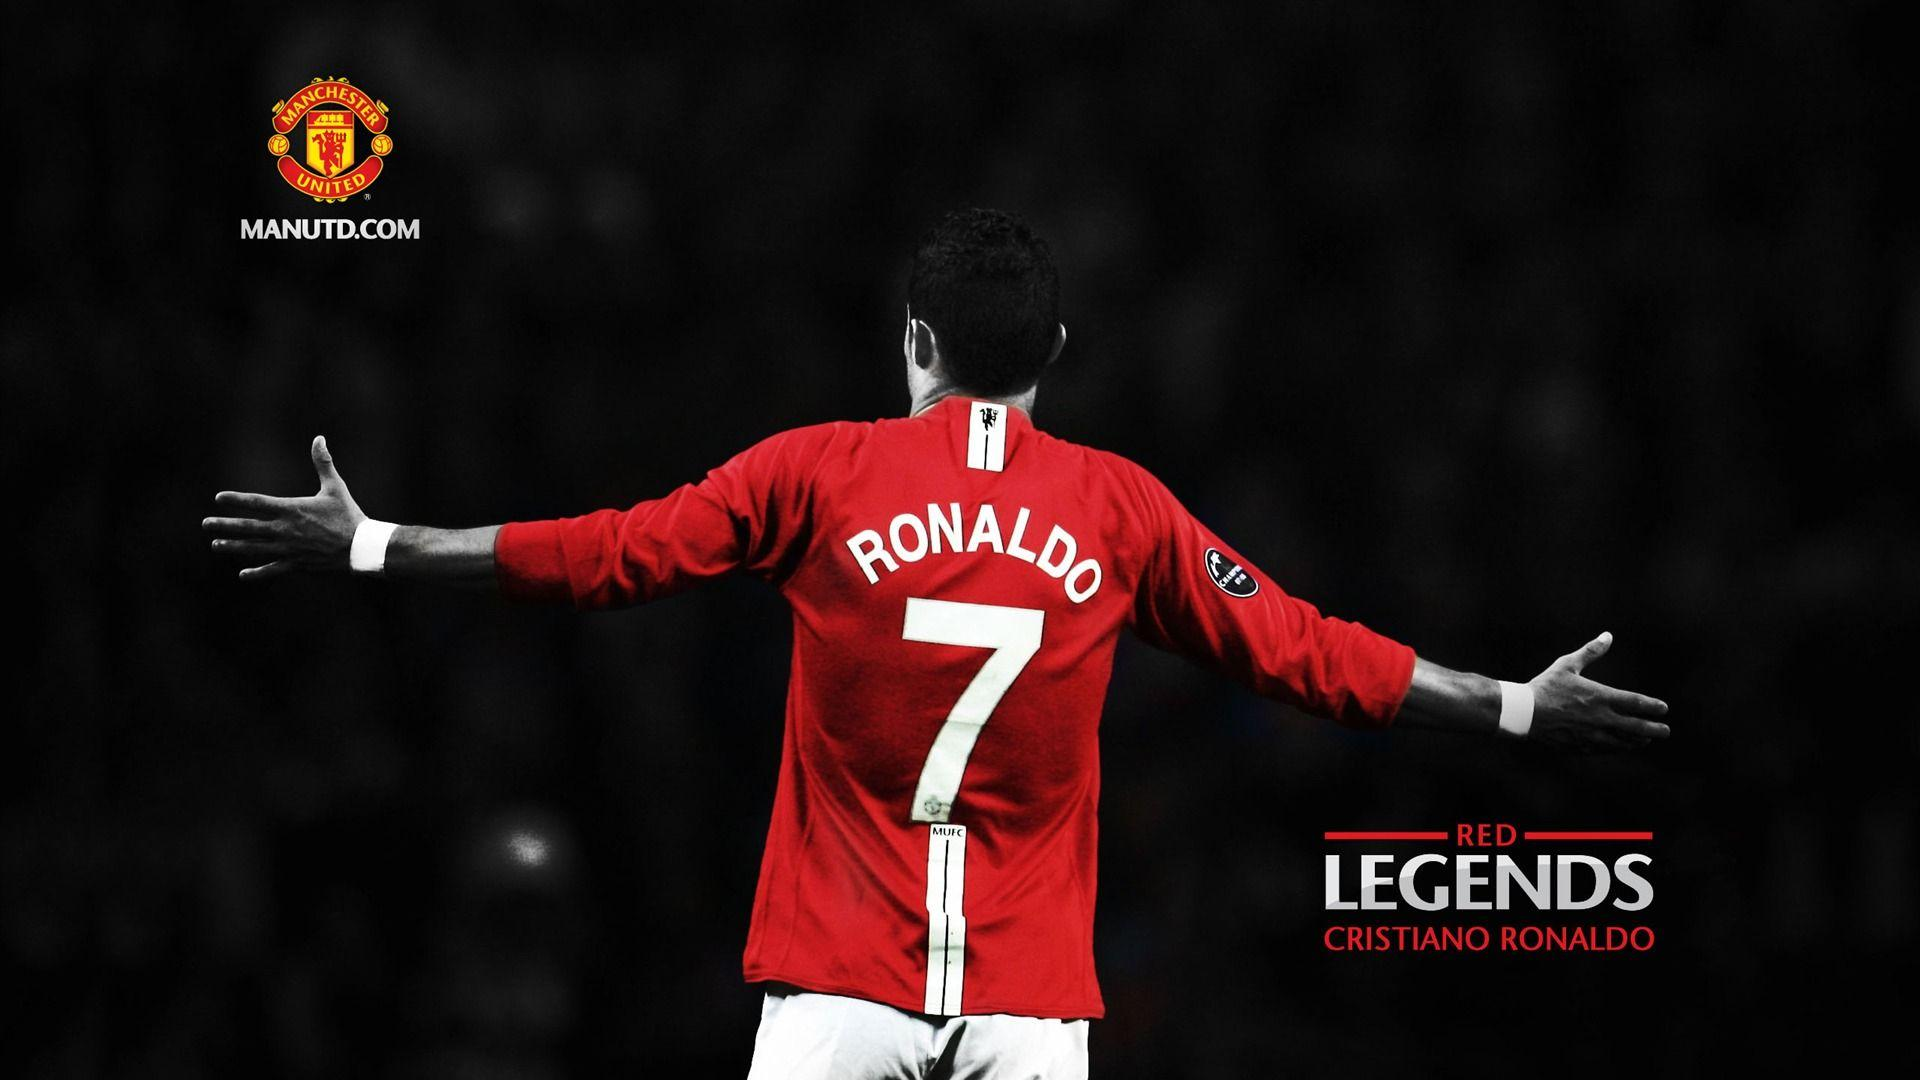 Cristiano Ronaldo Manchester United HD Wallpapers | HD Wallpapers